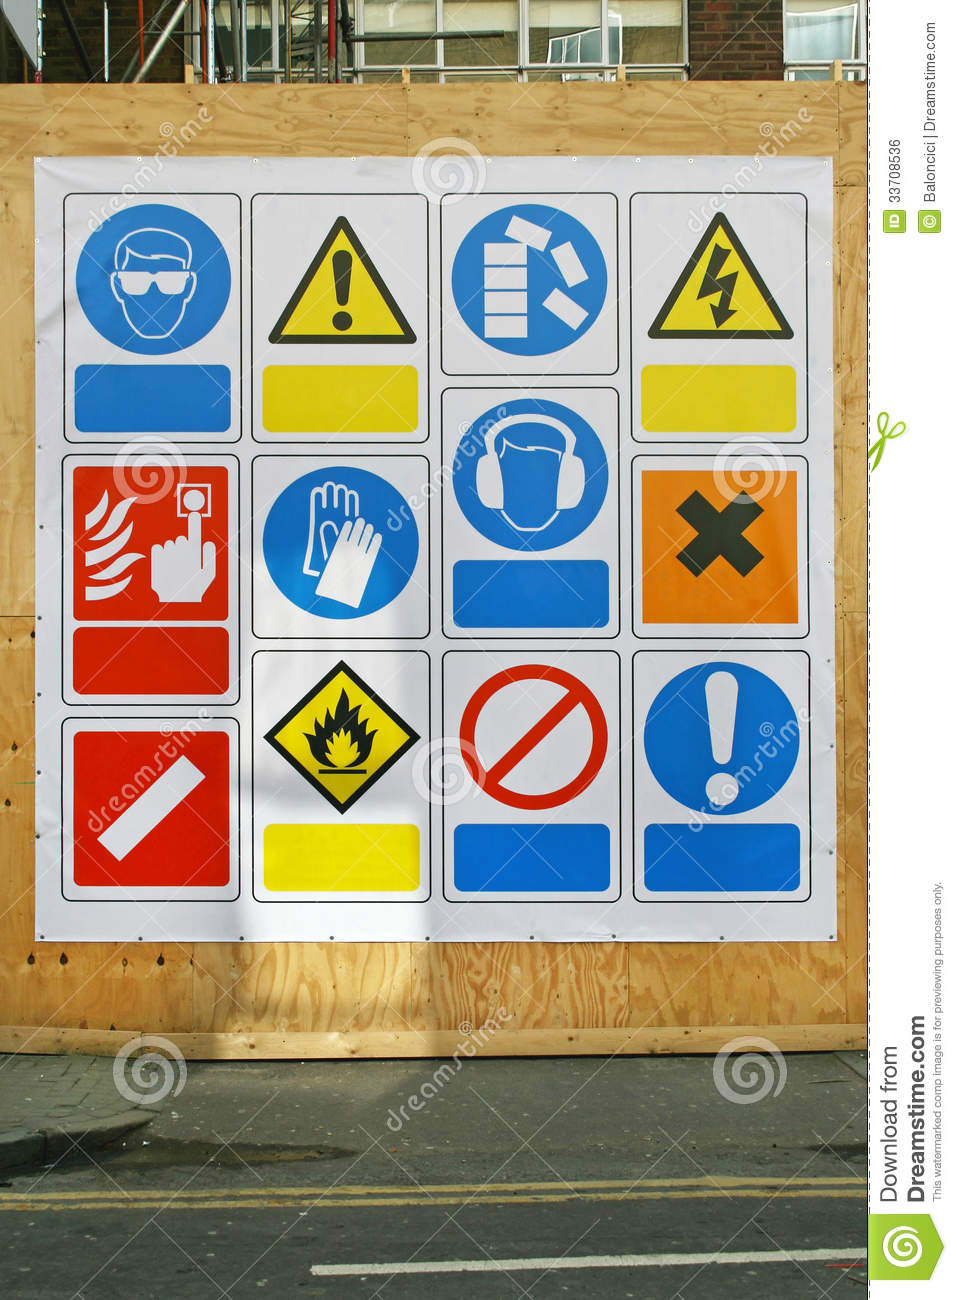 Safety signs stock photo image of sign signs workplace 33708536 safety signs buycottarizona